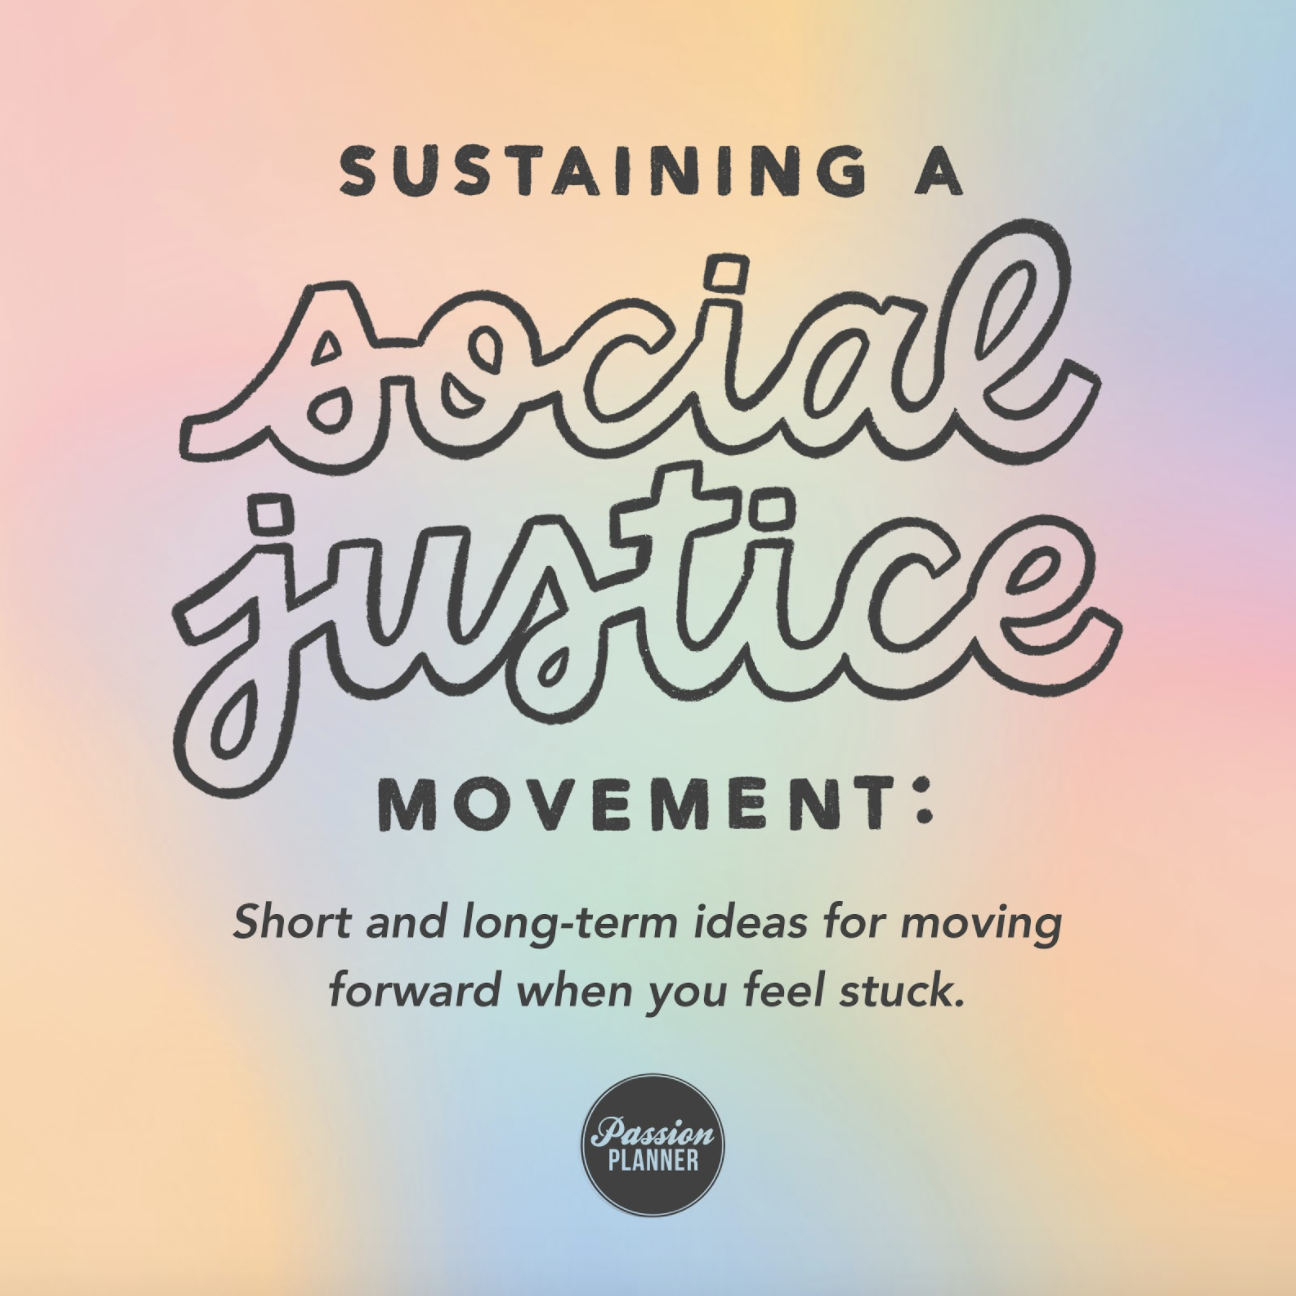 Sustaining a Social Justice Movement